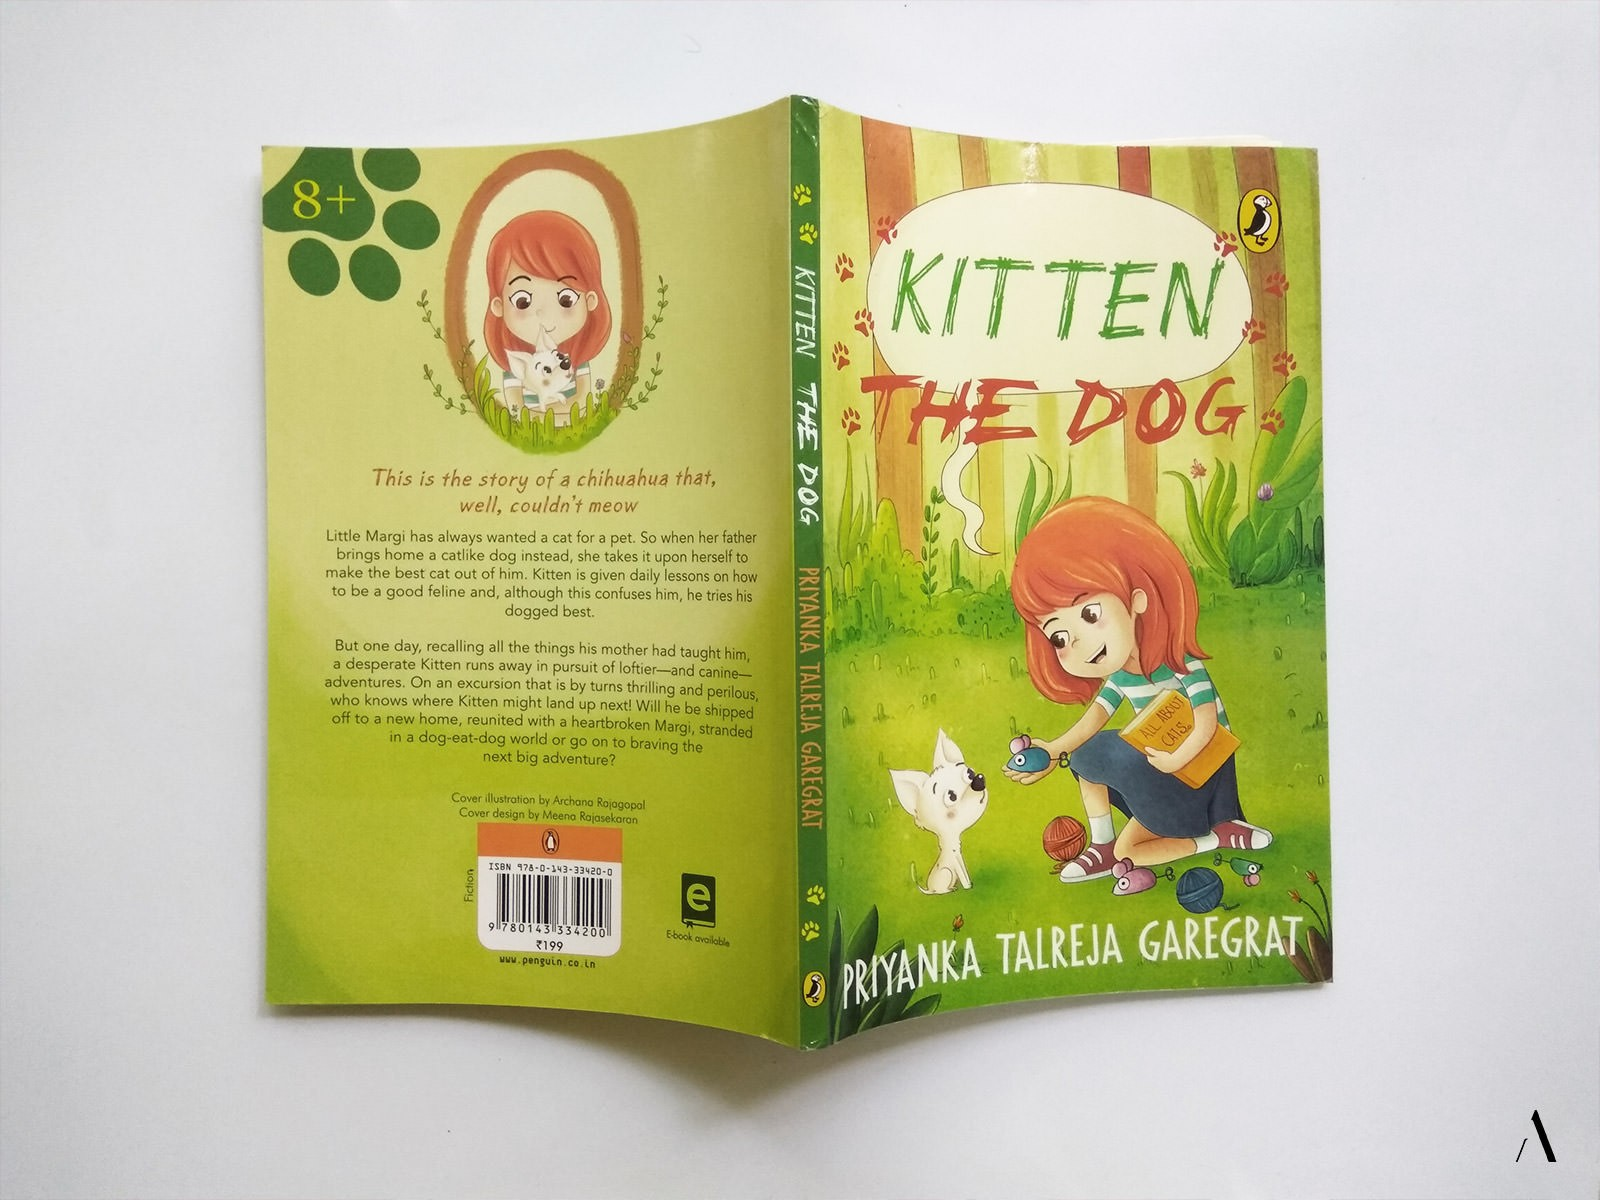 Front and back cover of illustrated children's novel, kitten the dog